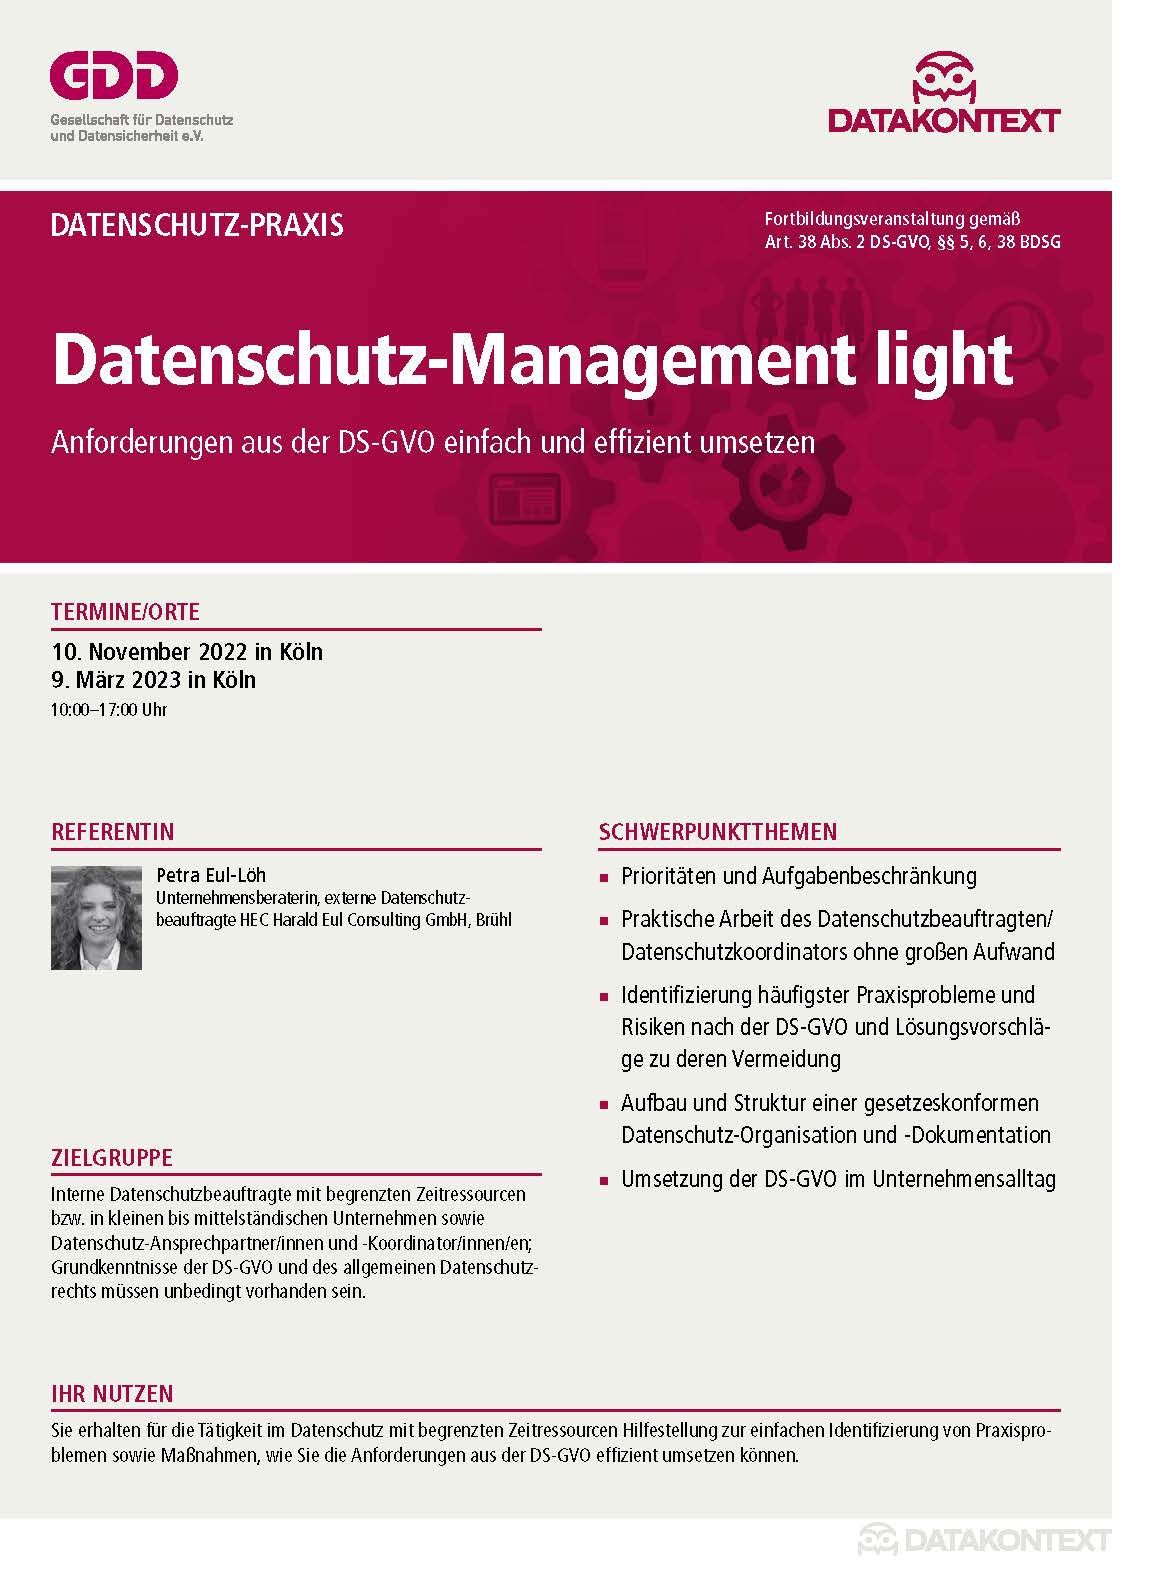 Datenschutz-Management light